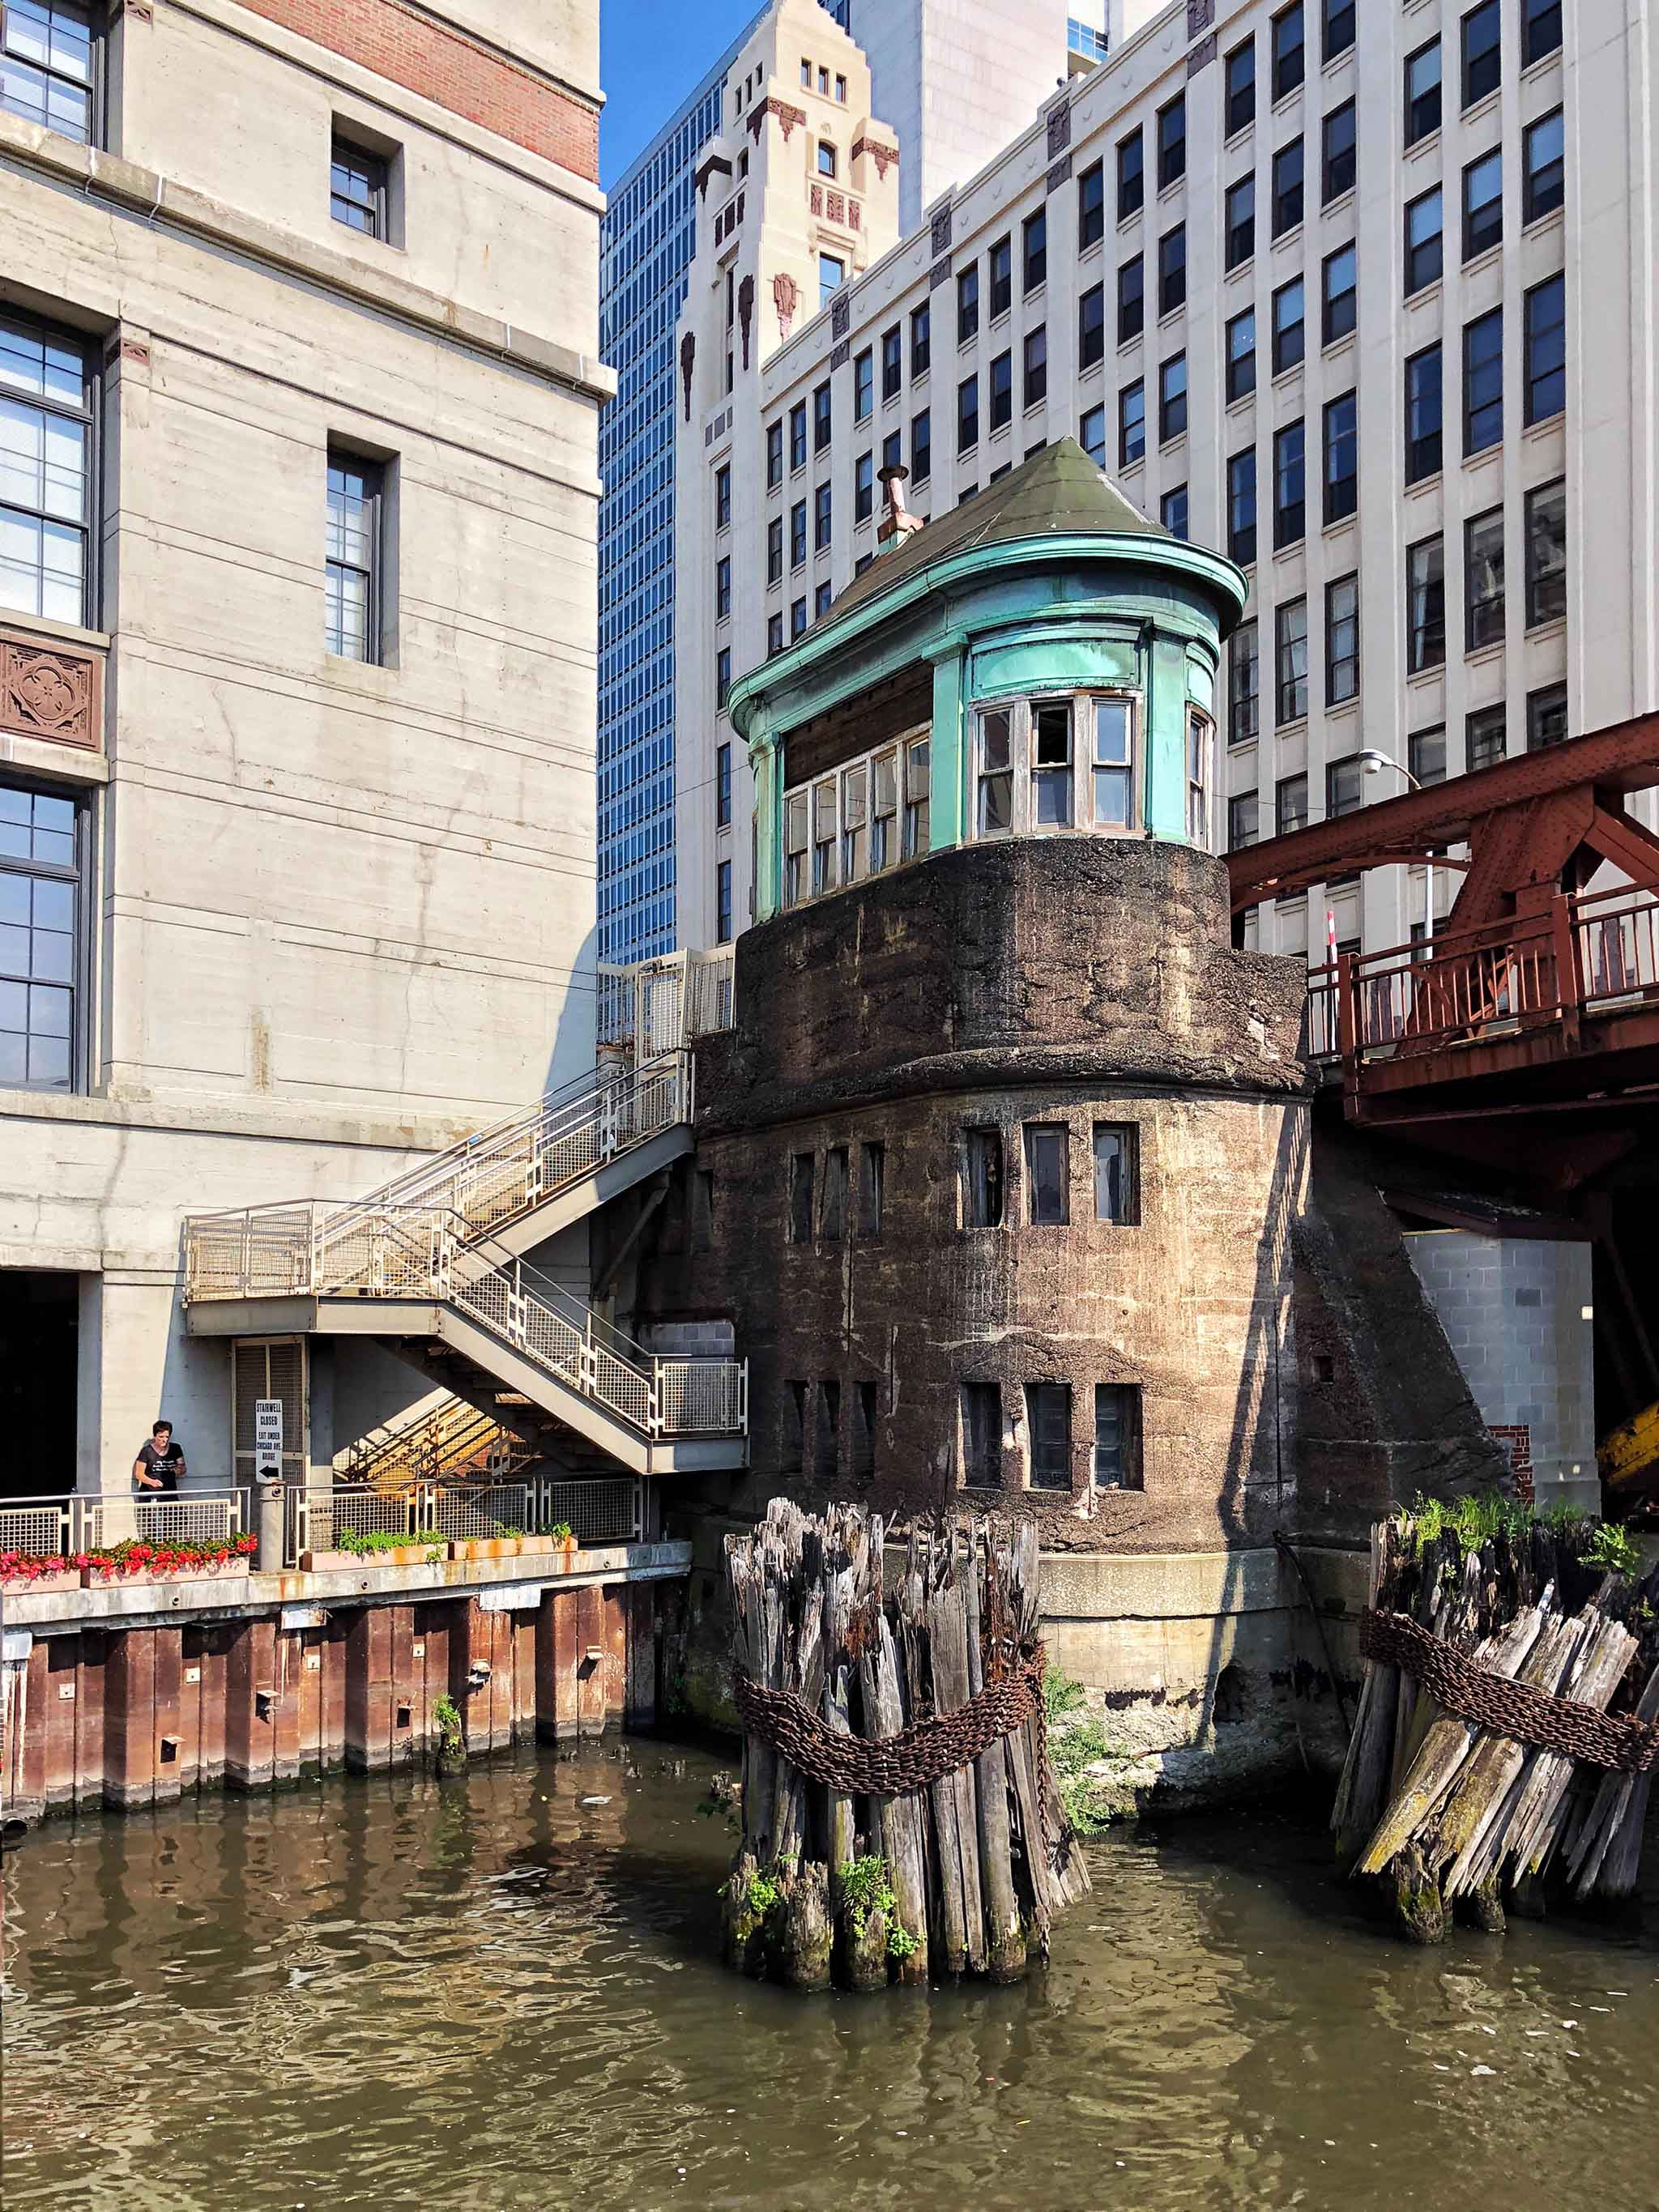 Chicago Avenue Bridge (100-years old) and bridge house shown here is set to be demolition in winter of 2018.